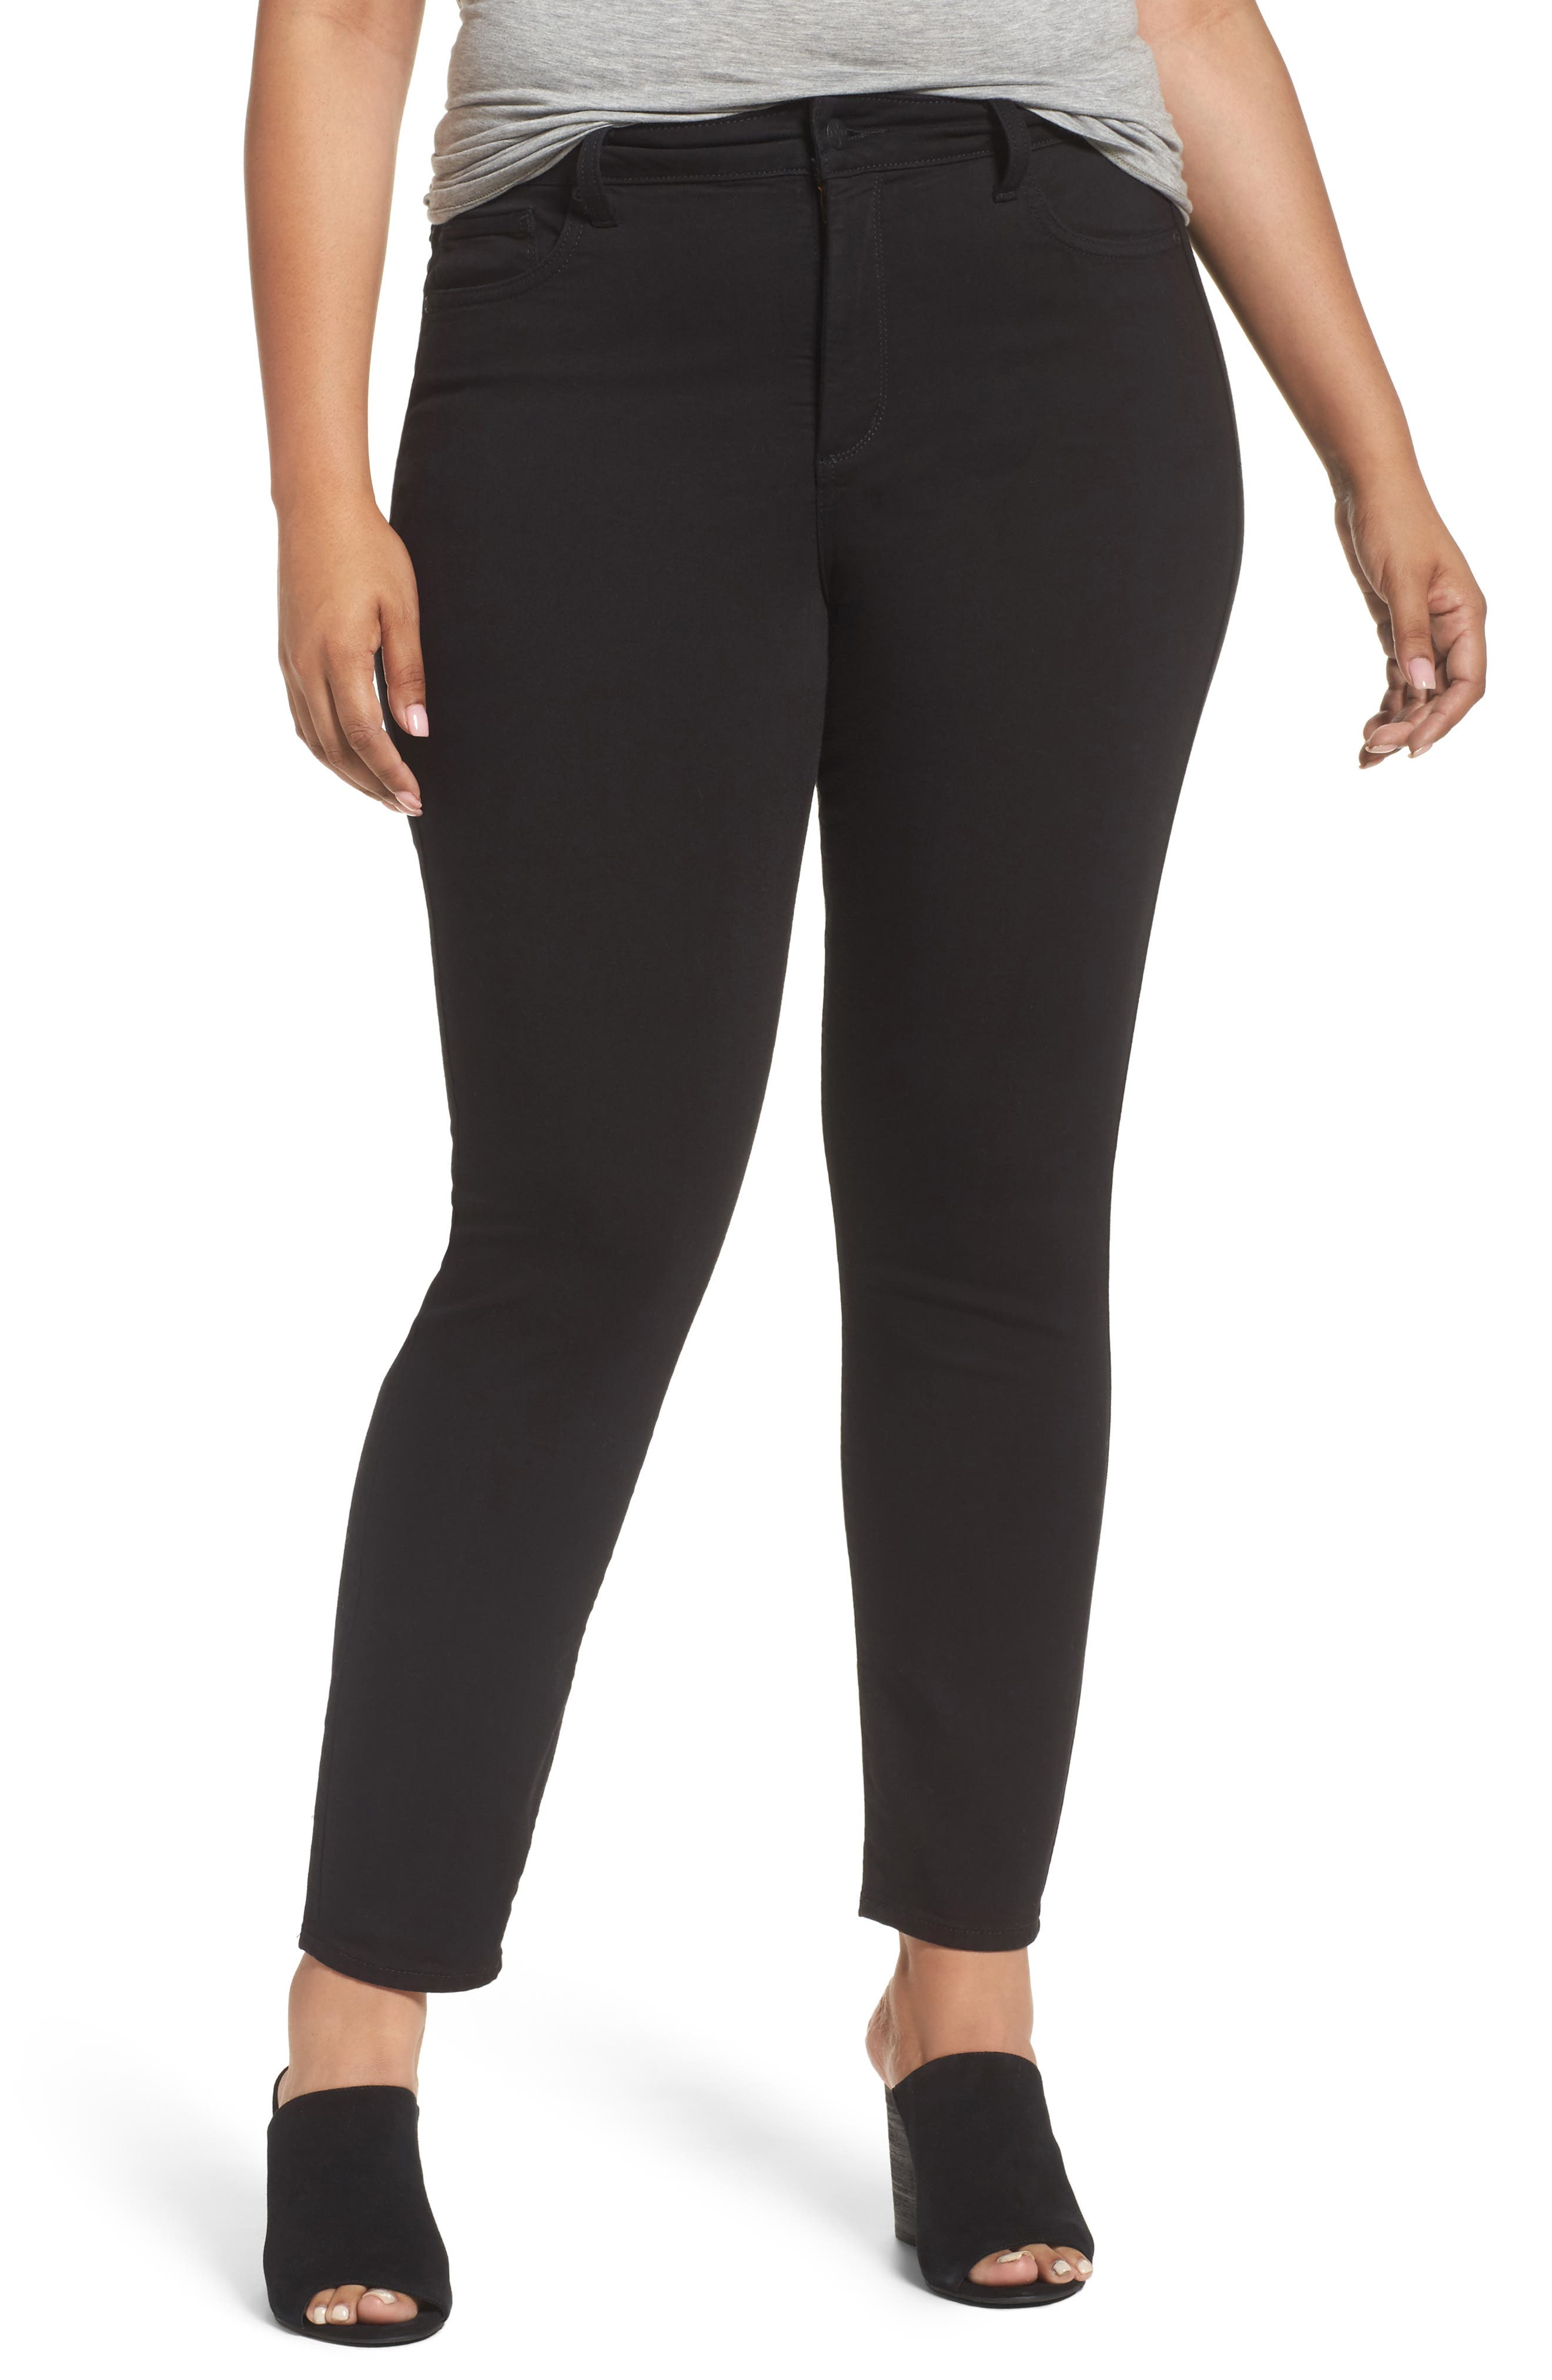 Alternate Image 1 Selected - NYDJ Ami Stretch Skinny Jeans (Plus Size)